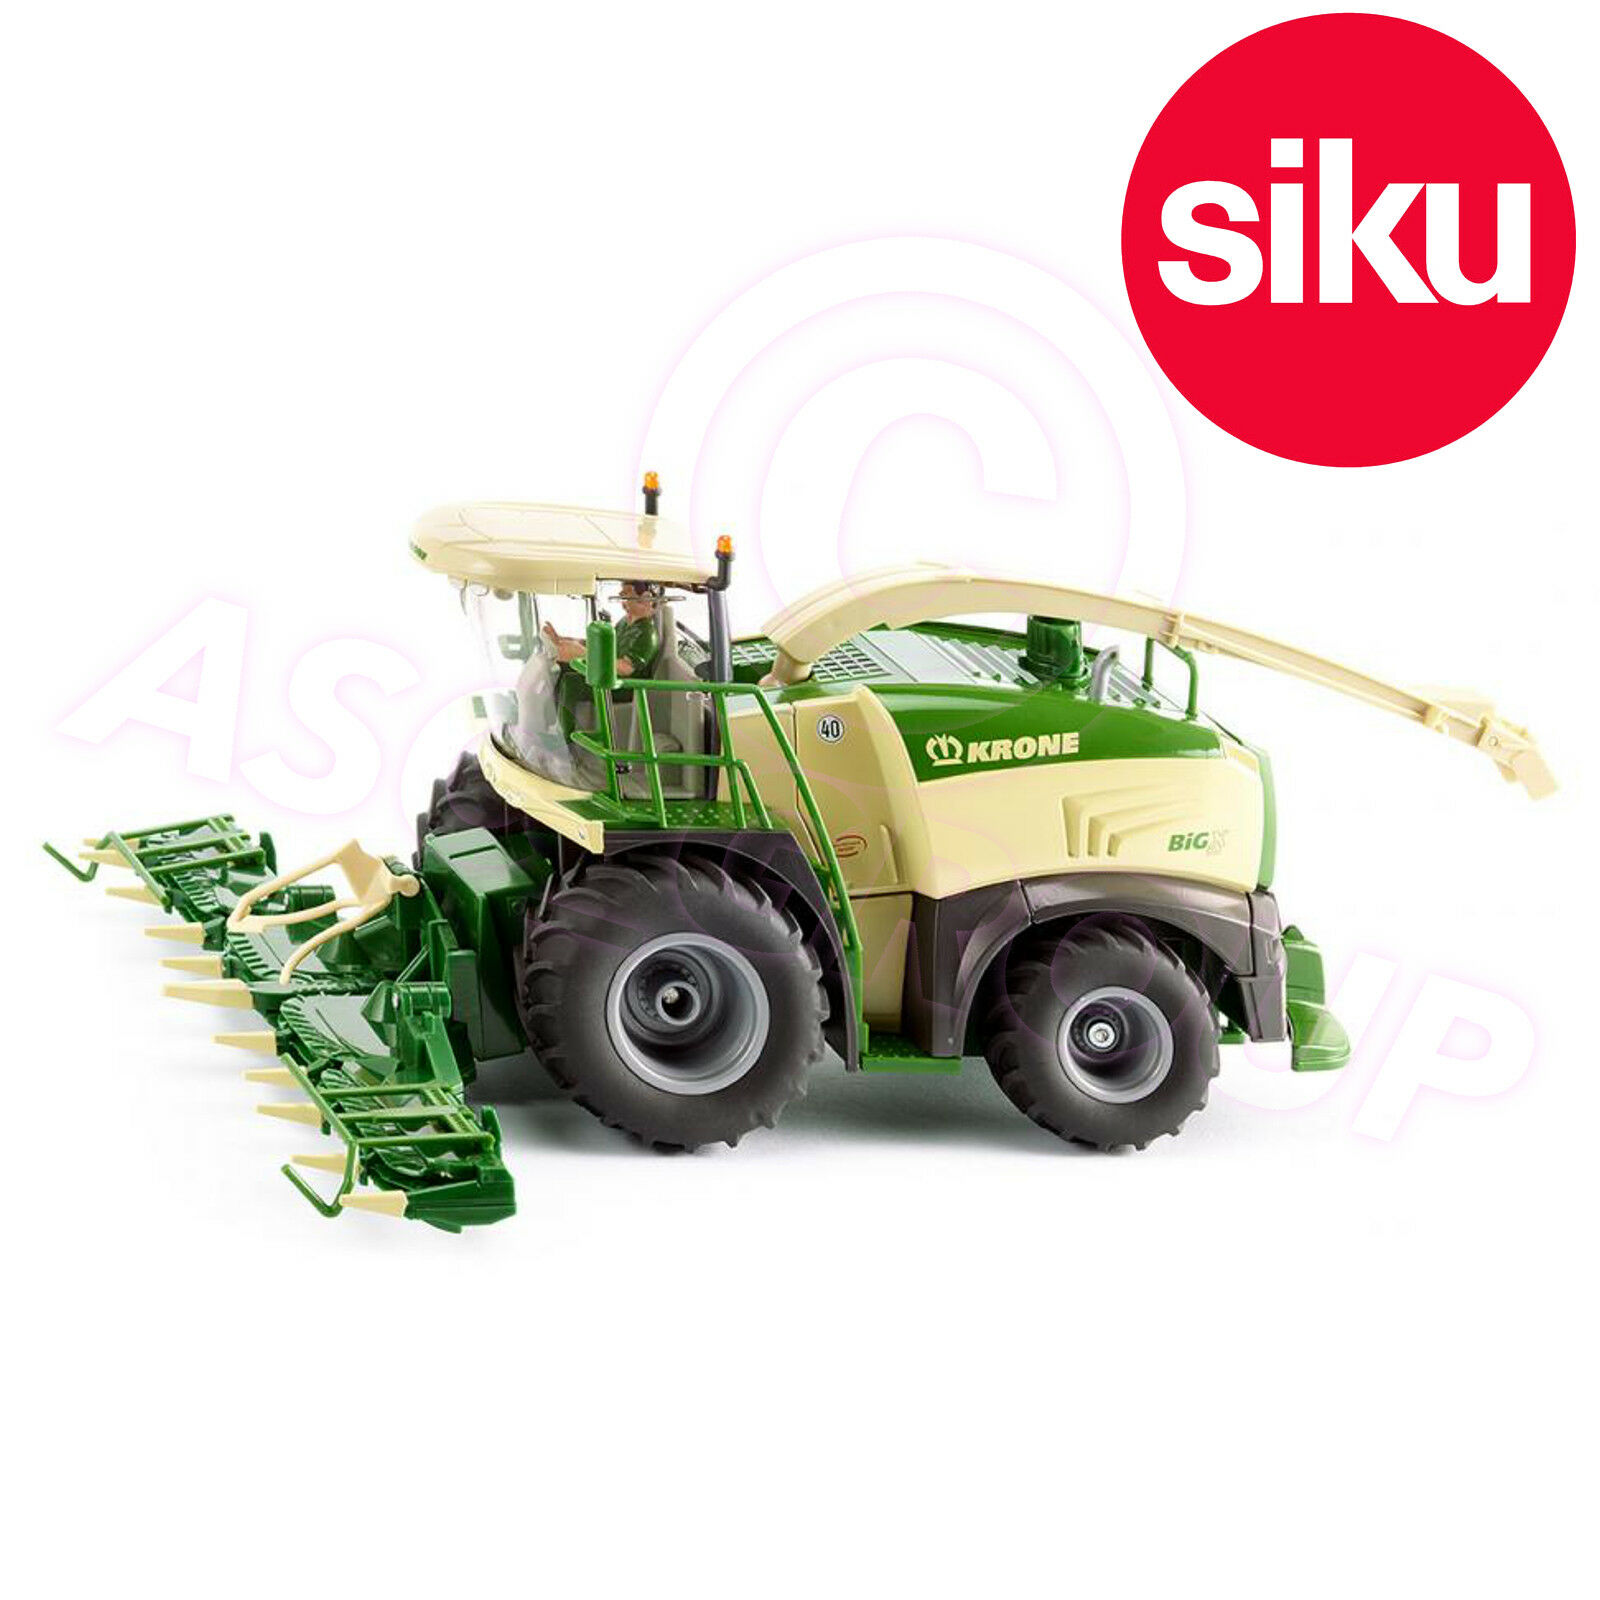 Siku 4066 Krone Big X 580 Forage Harvester Folding Cutter and Moving Tube 1 32